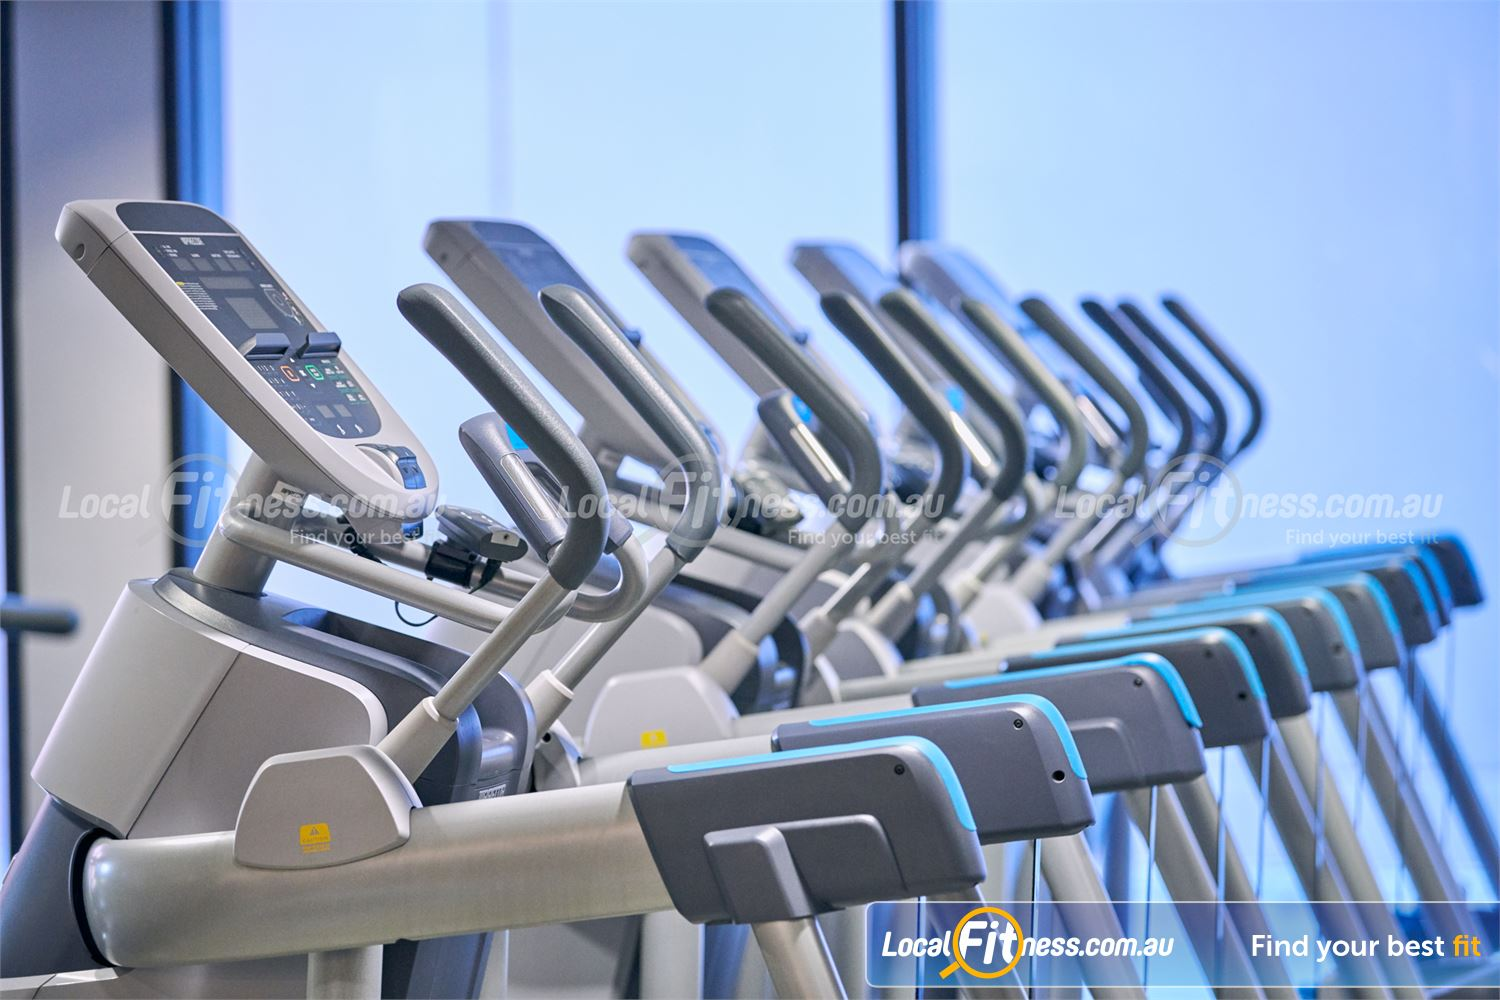 Fitness First Rockdale Rows of cardio machines so you don't have to wait.